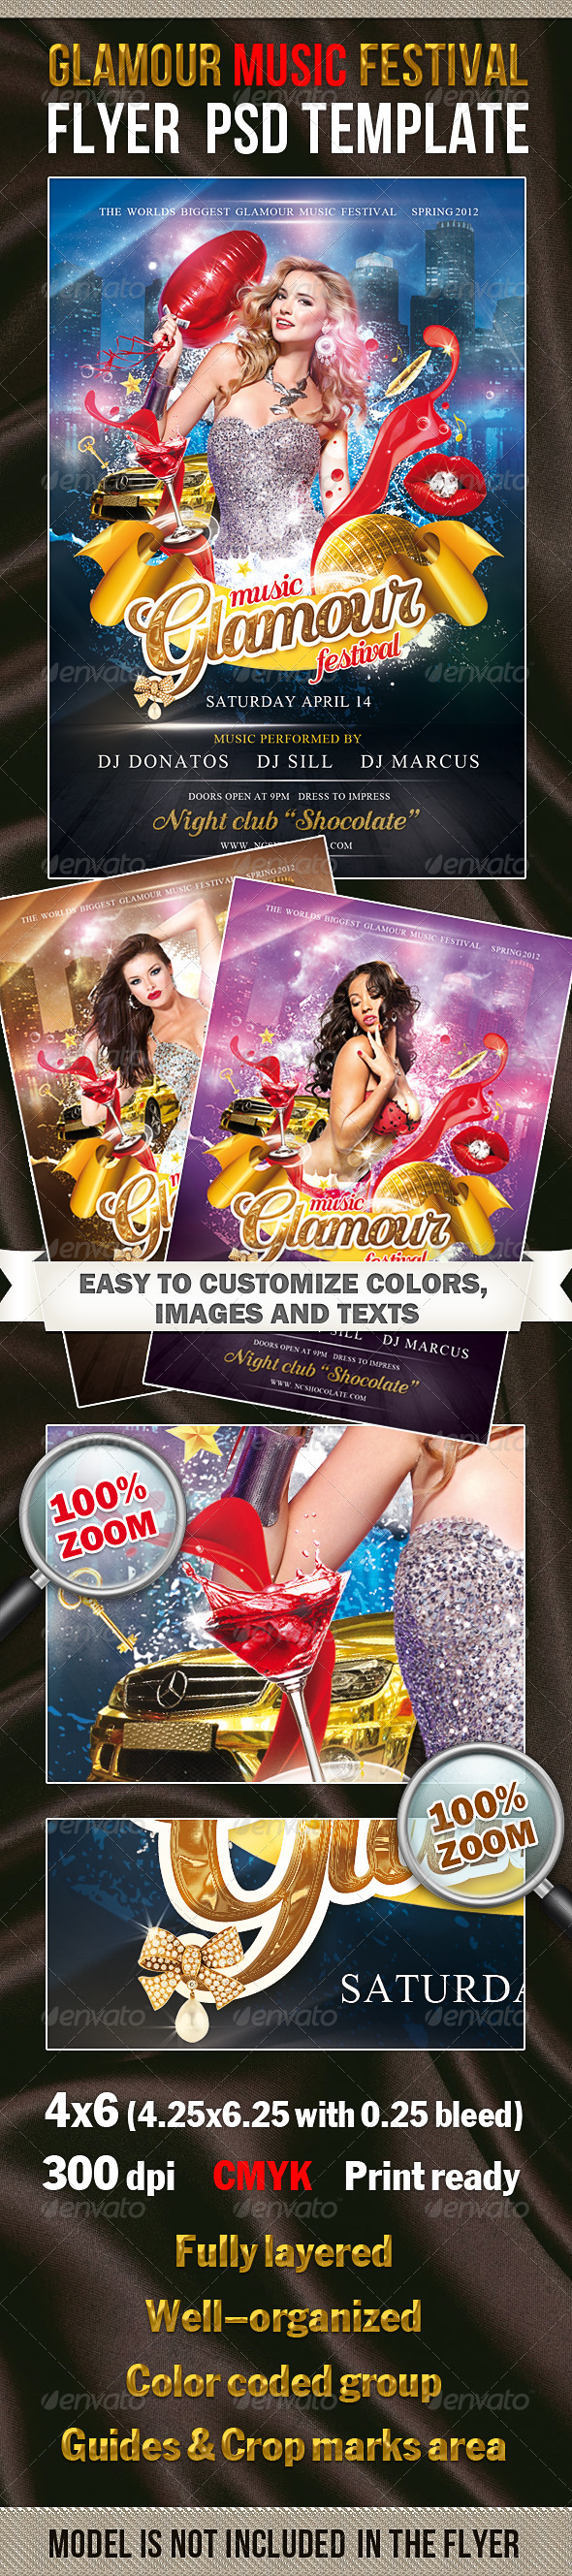 Glamour Music Festival PSD Template